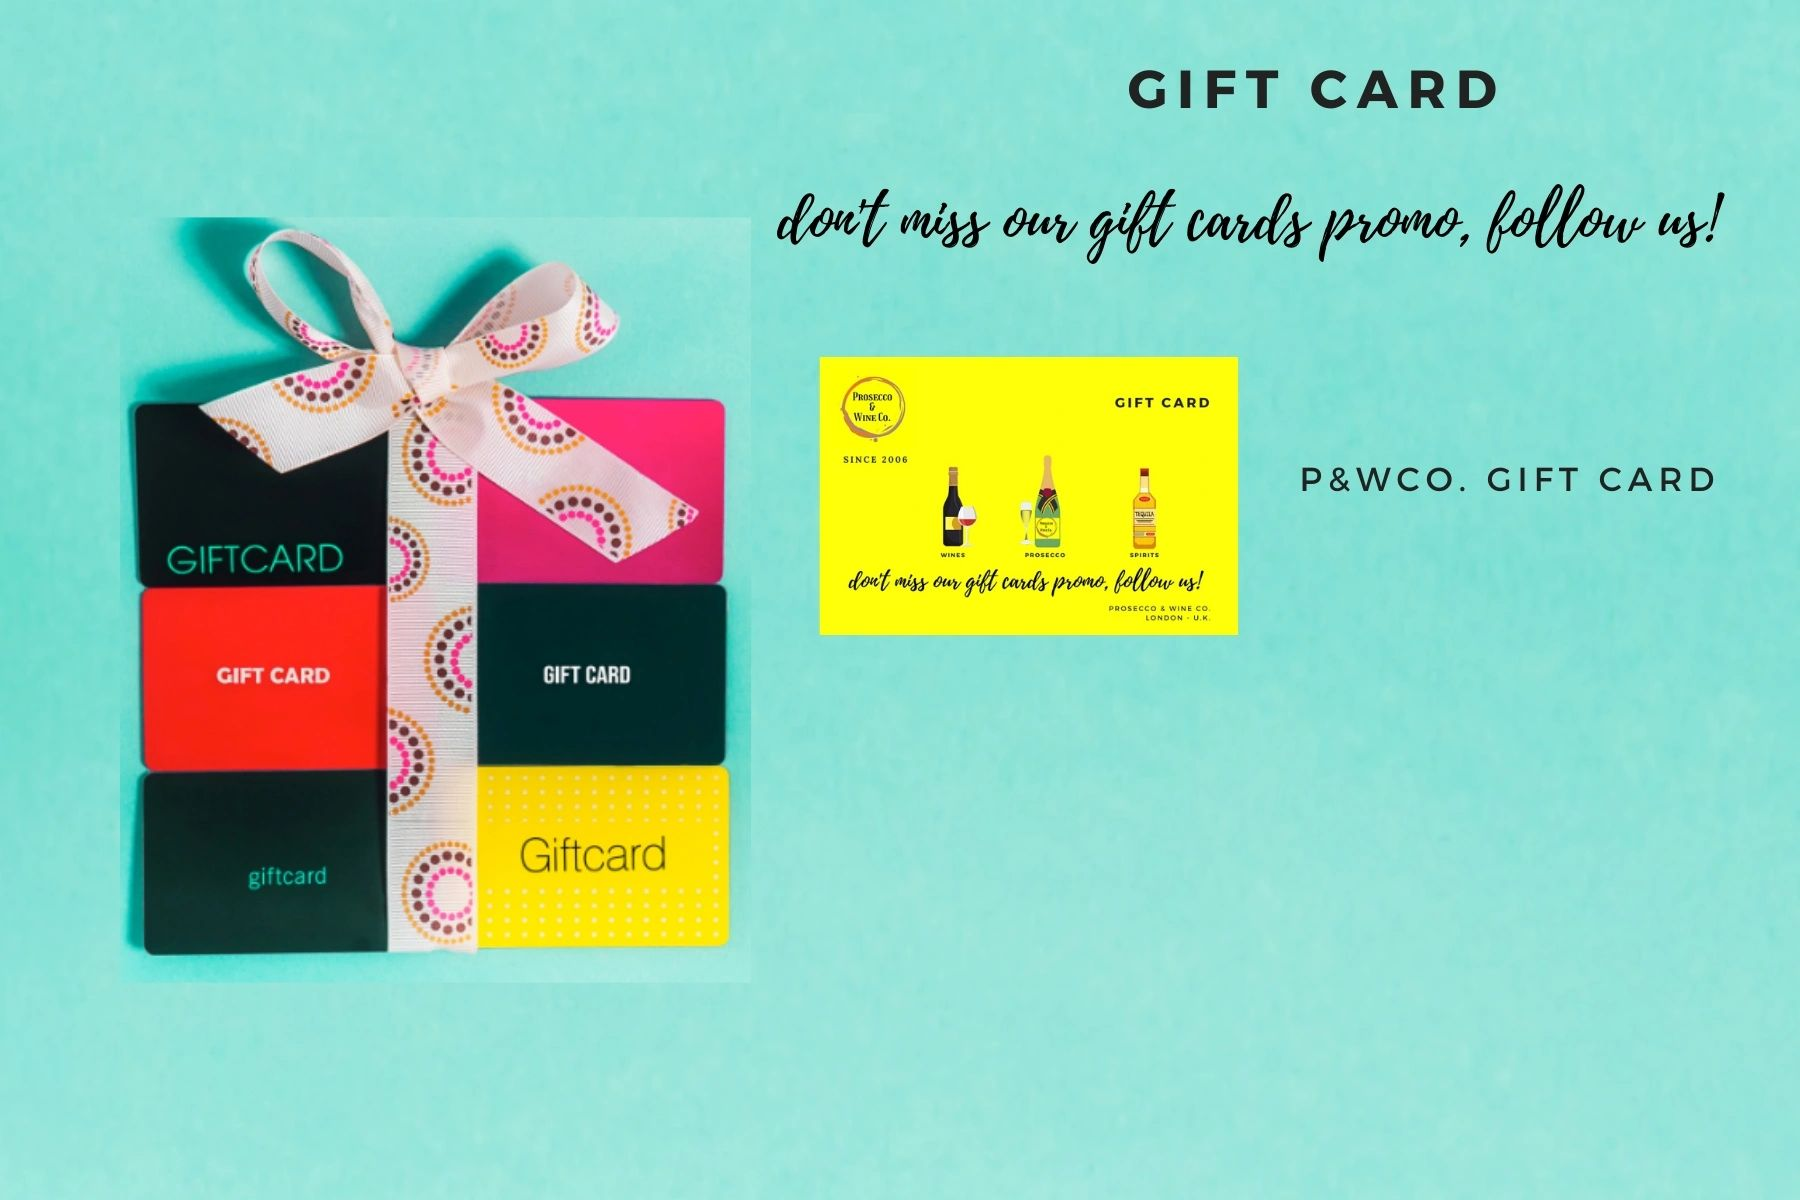 Send a gift card to friends and family or buy it now for your future use. Check our promo gift cards